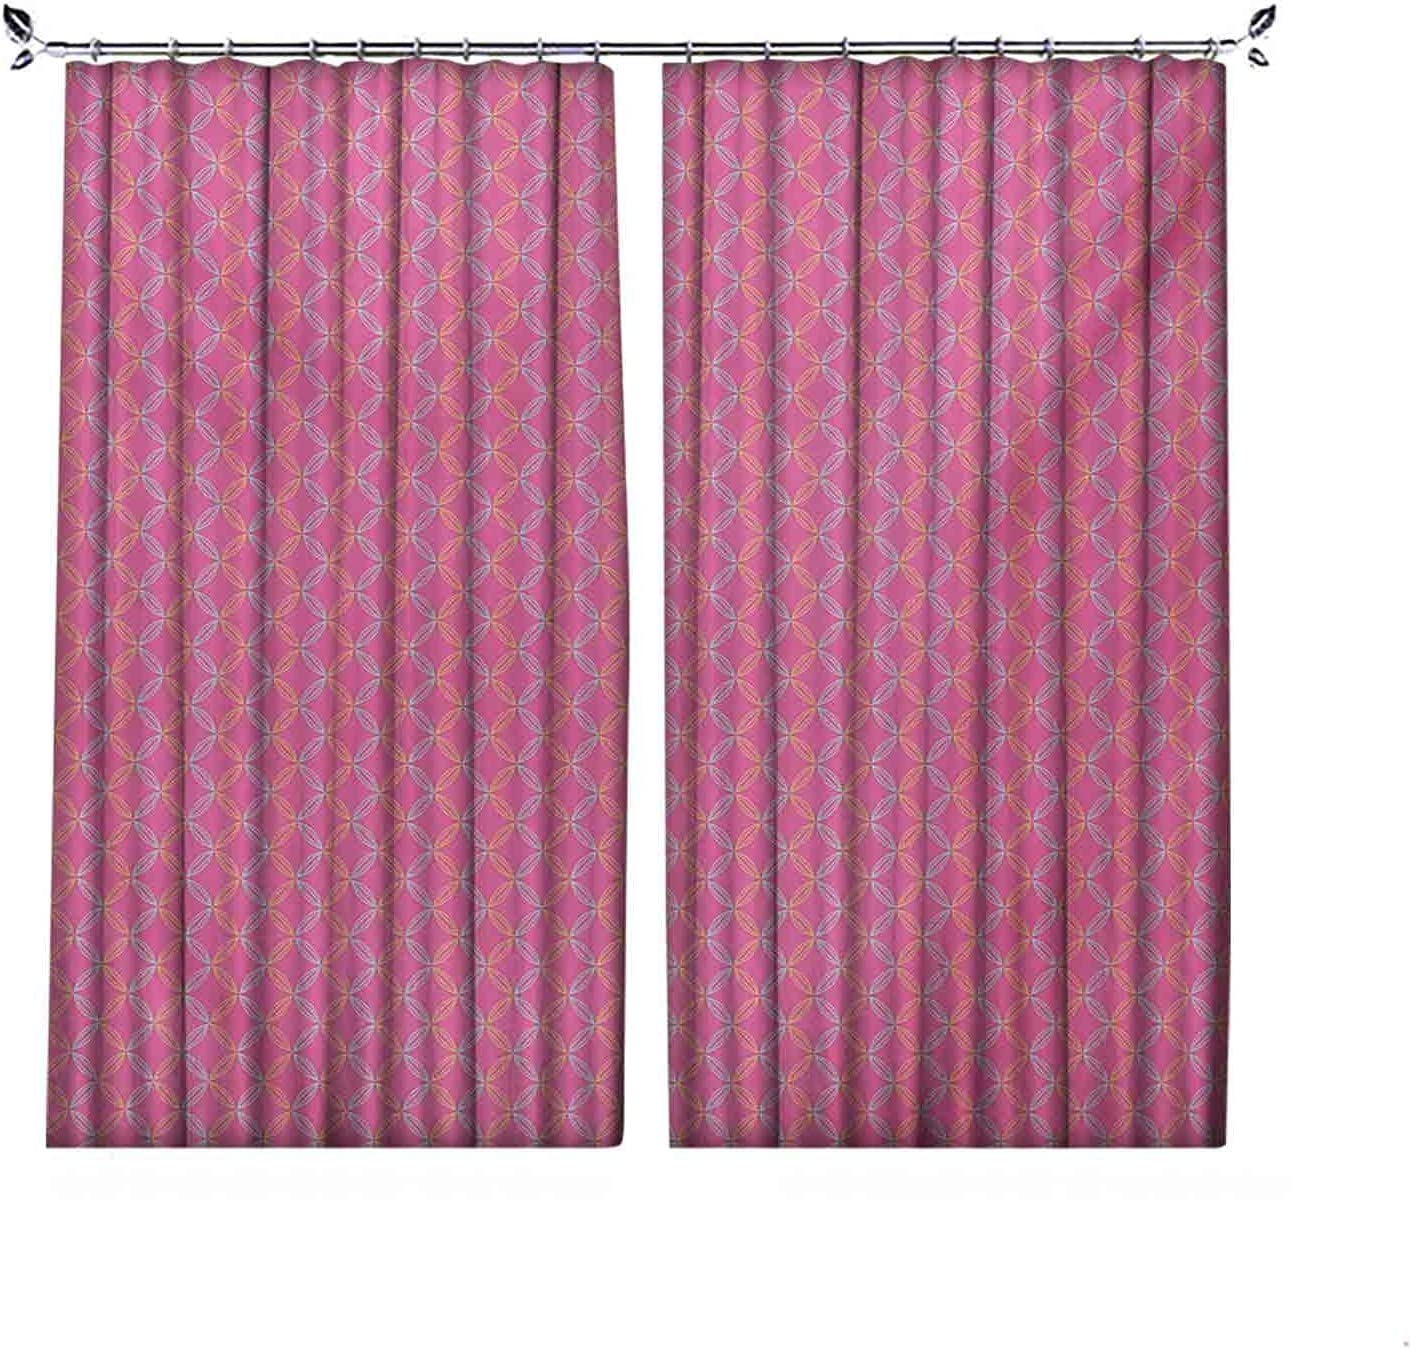 Room Darkening Modern Curtain Circular Super sale period limited Petal Flower Today's only with Shapes